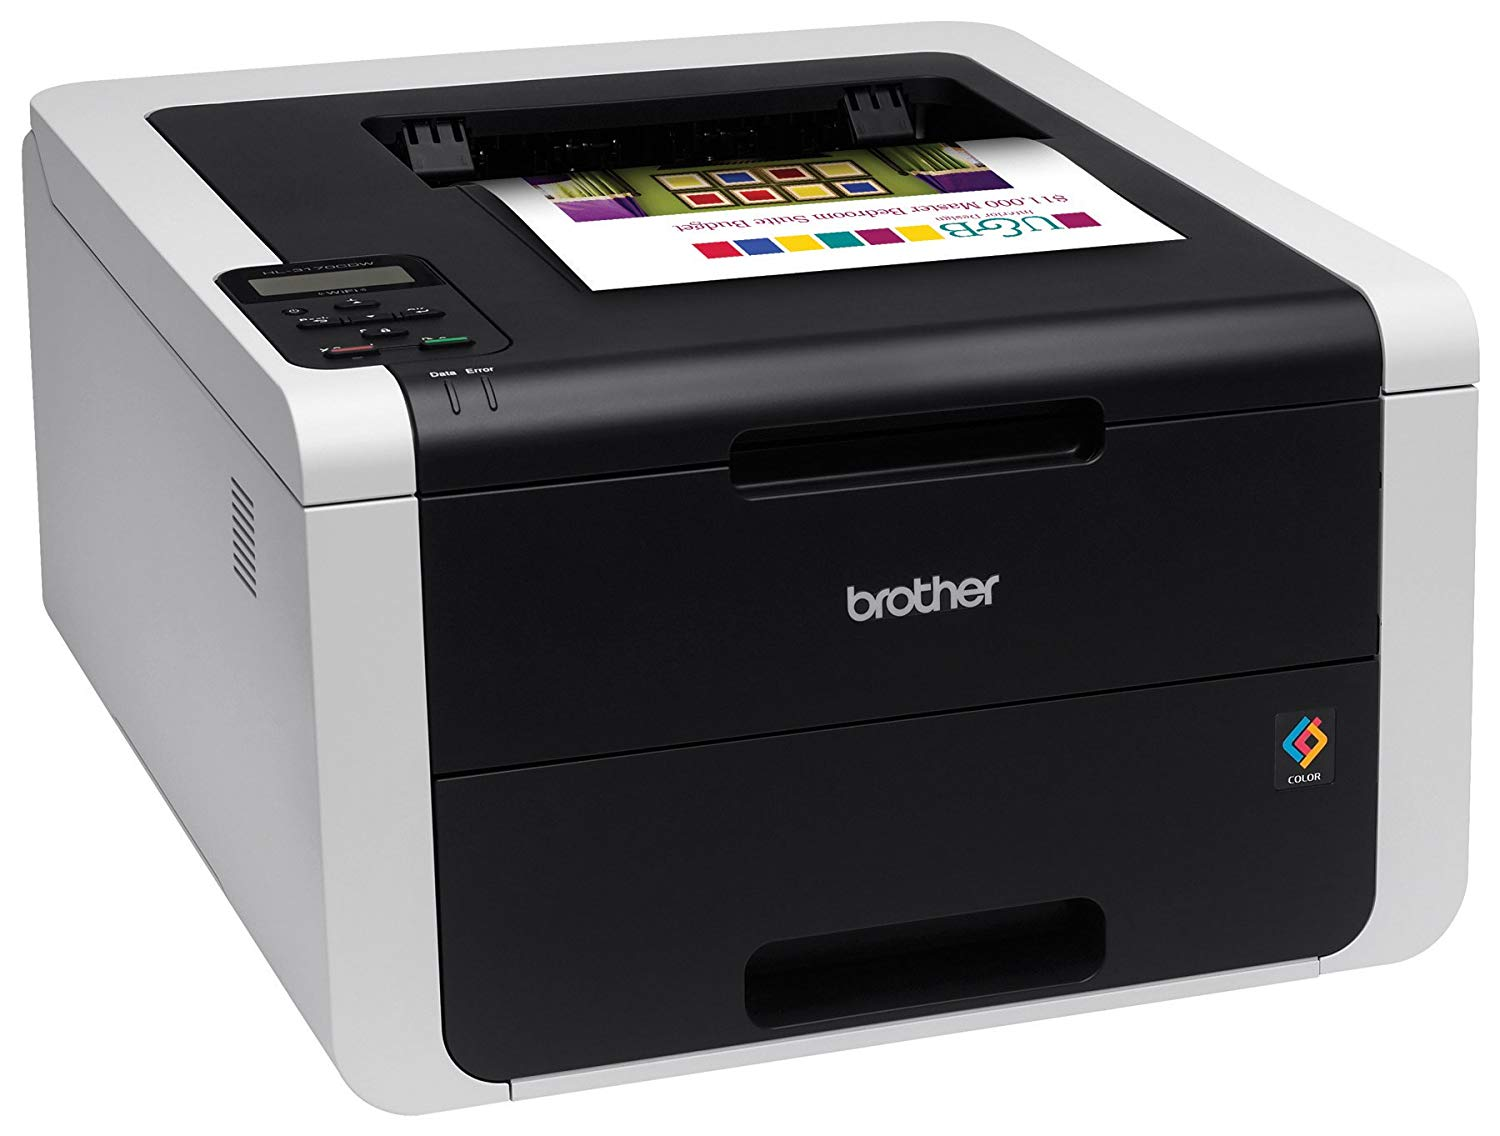 PRINTER BROTHER COLOR LASER HL-3170 CDW  DUPLEX + WIRELESS ,Laser Printer